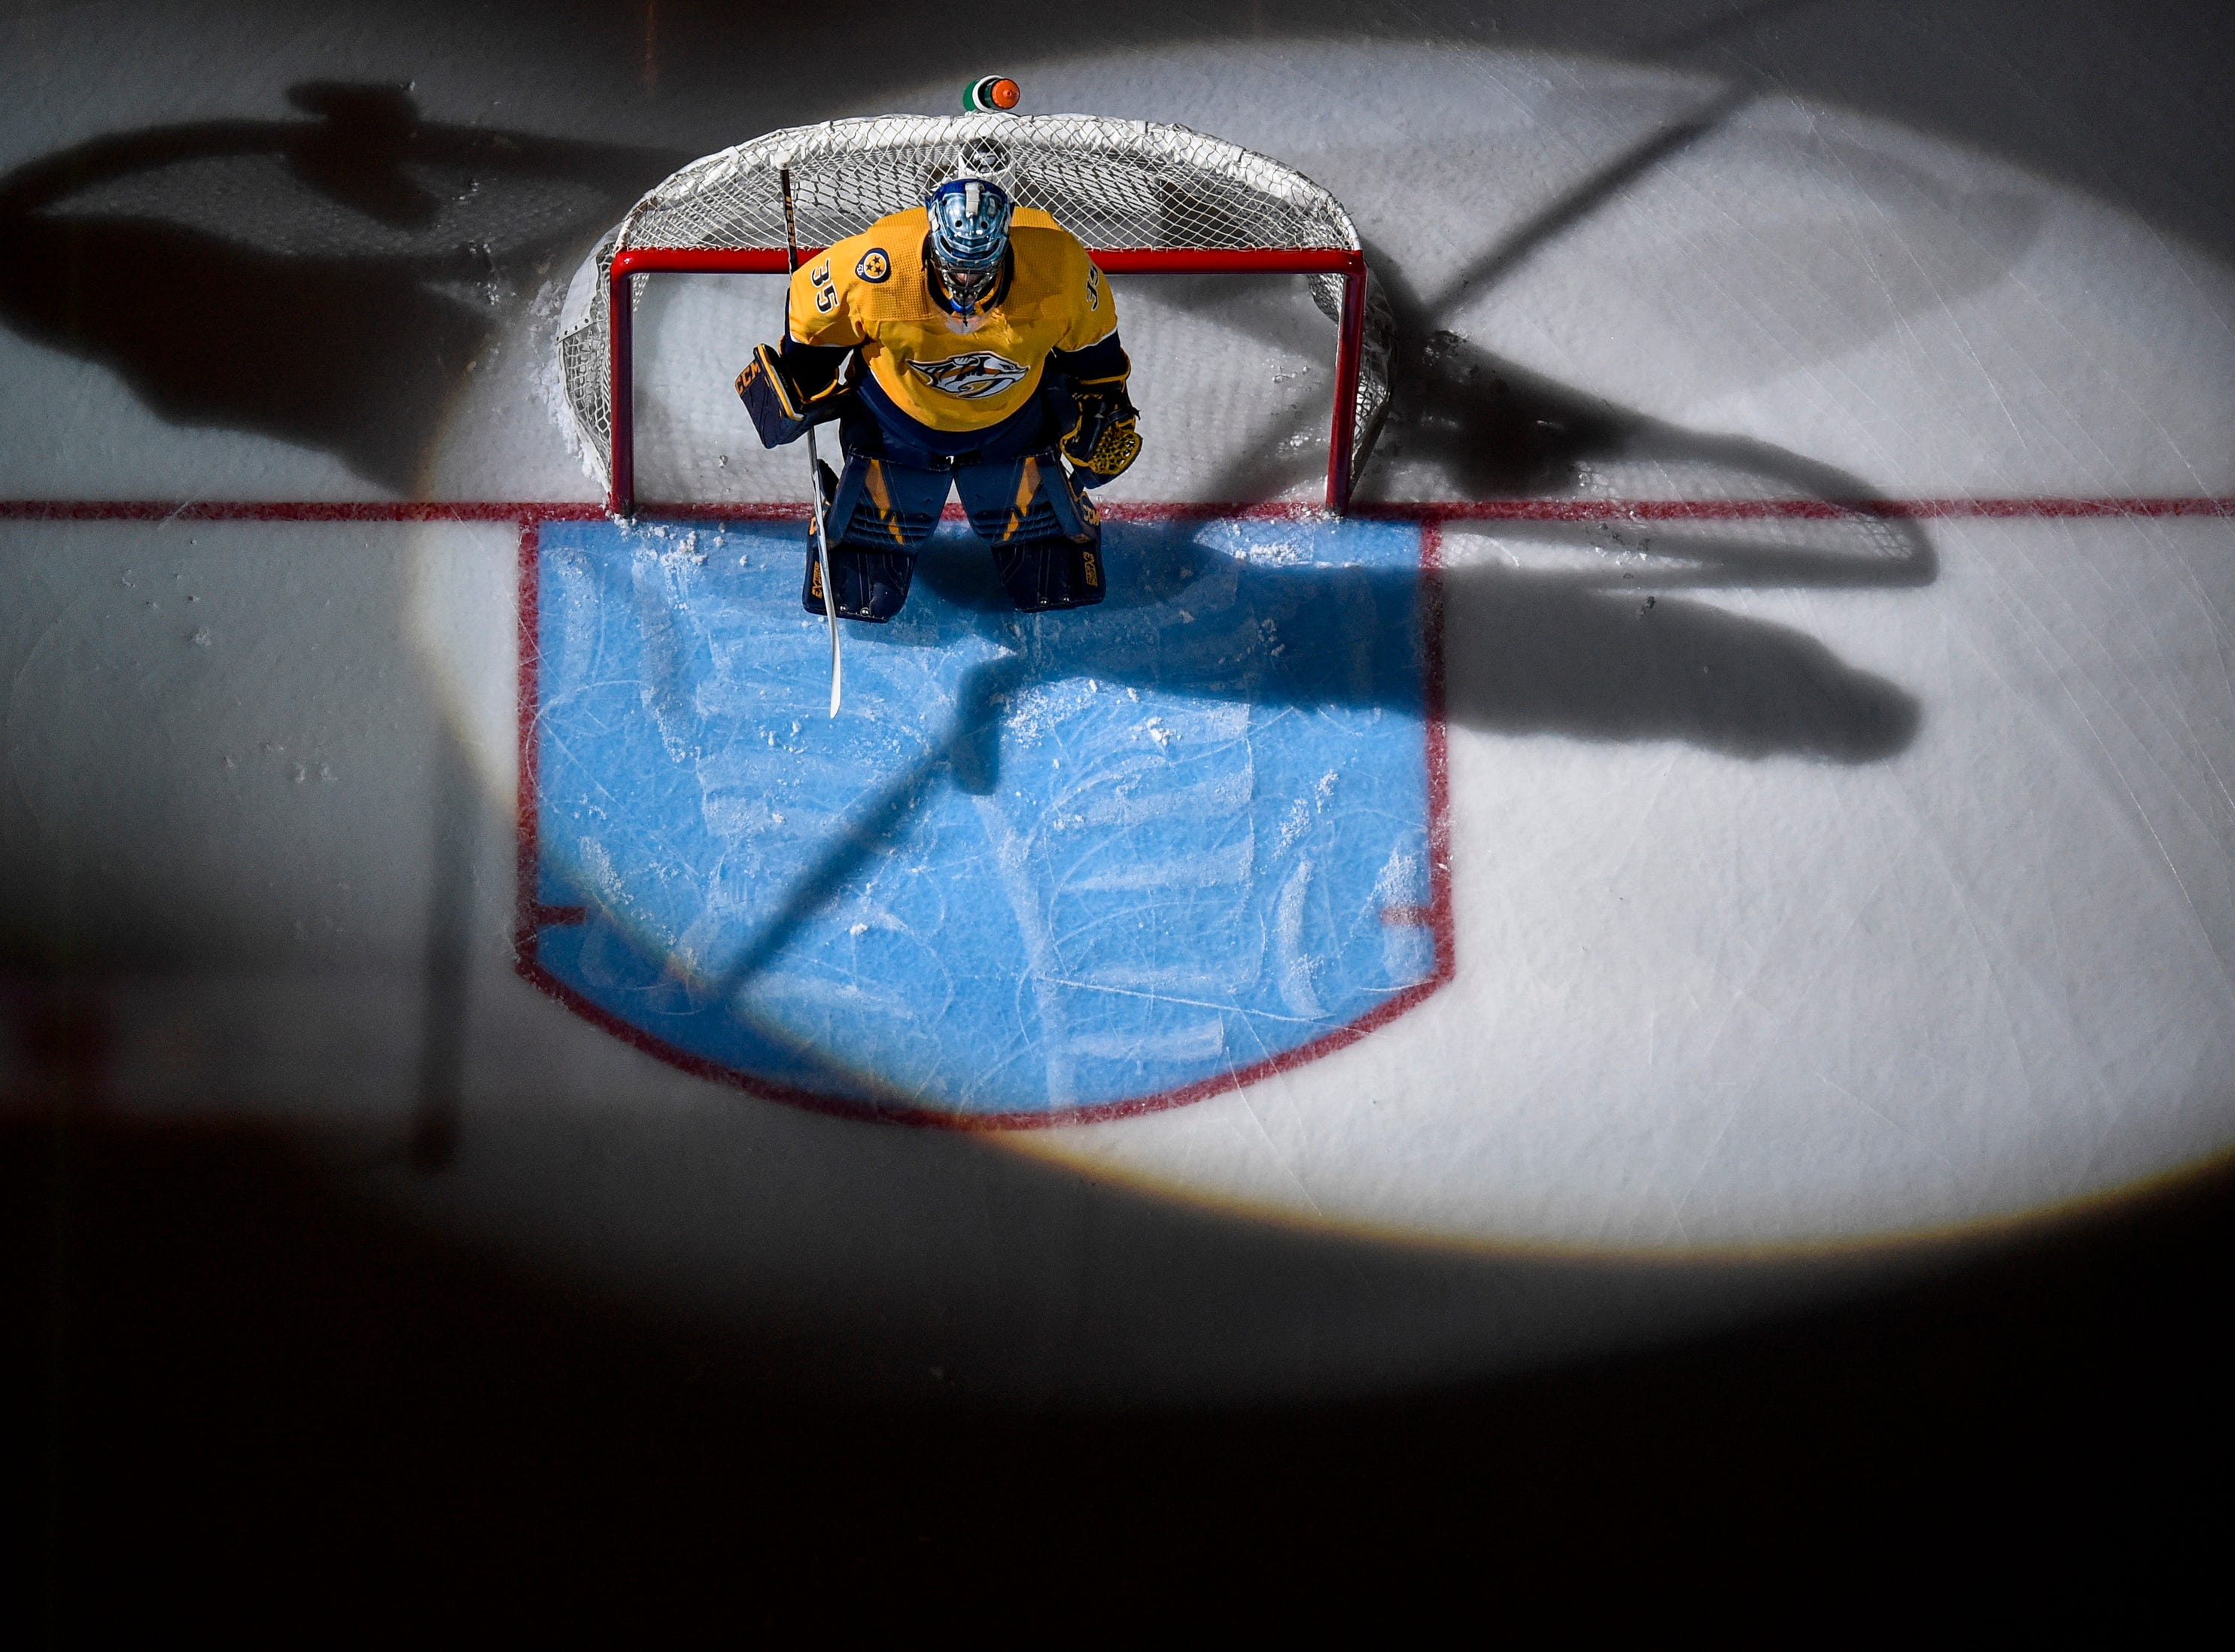 Nashville Predators goaltender Pekka Rinne (35) is introduced before a divisional semifinal game against the Dallas Stars at Bridgestone Arena in Nashville, Tenn., Wednesday, April 10, 2019.